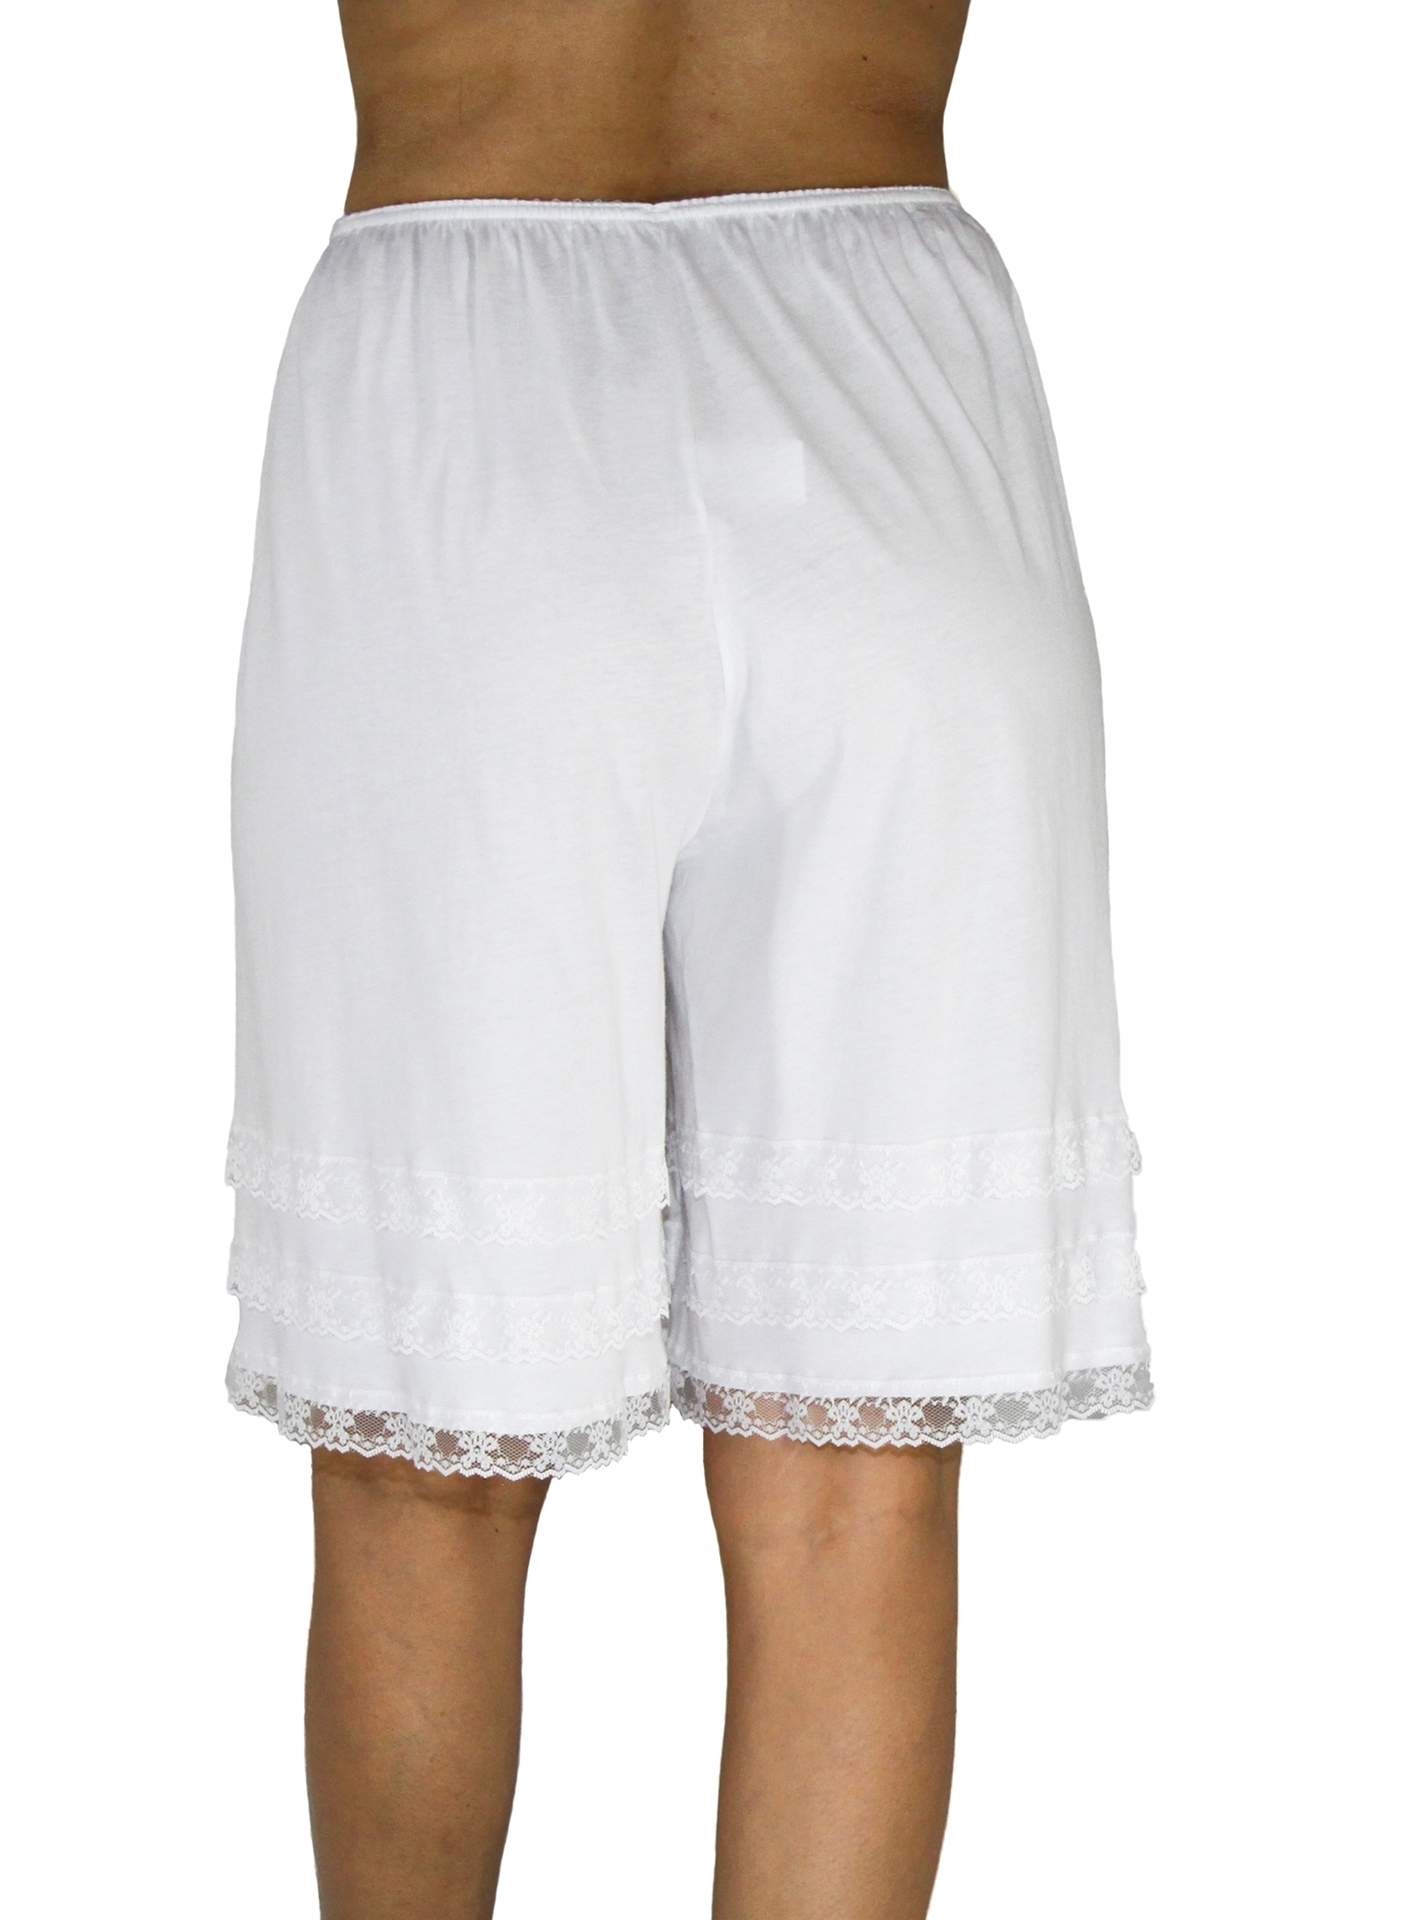 Picture of Cotton Knit Snip-A-Length Pettipants Culotte Slip Bloomers Split Skirt